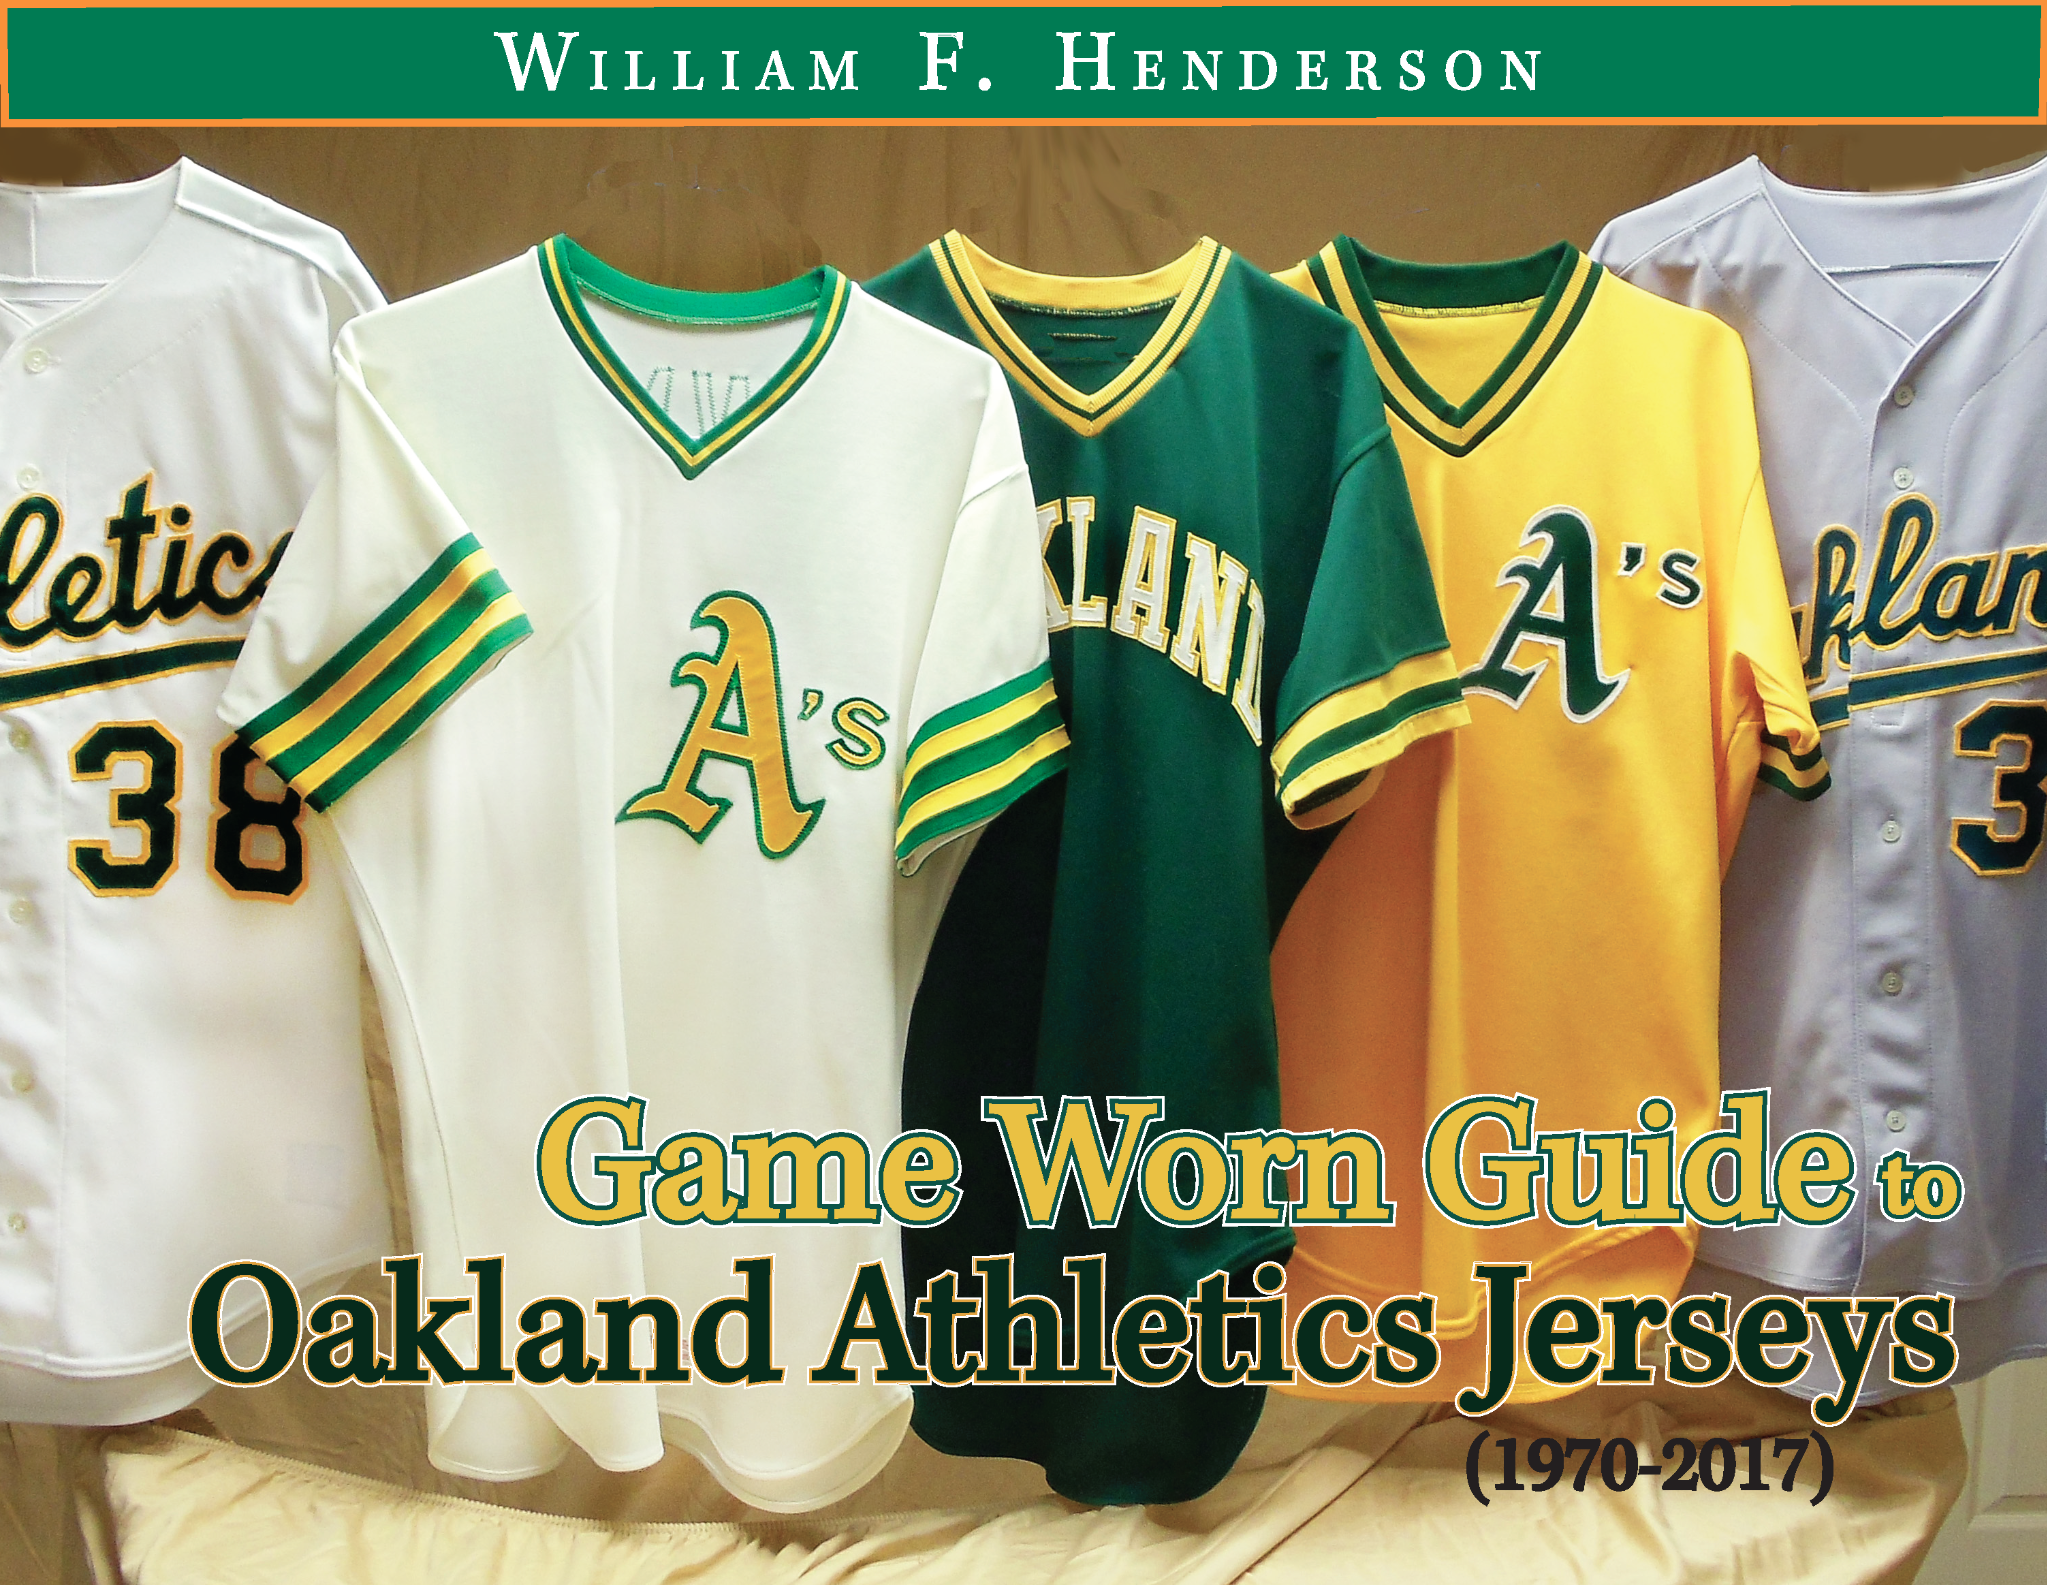 Game Worn Guide to Oakland Athletics Jerseys (1970-2017)